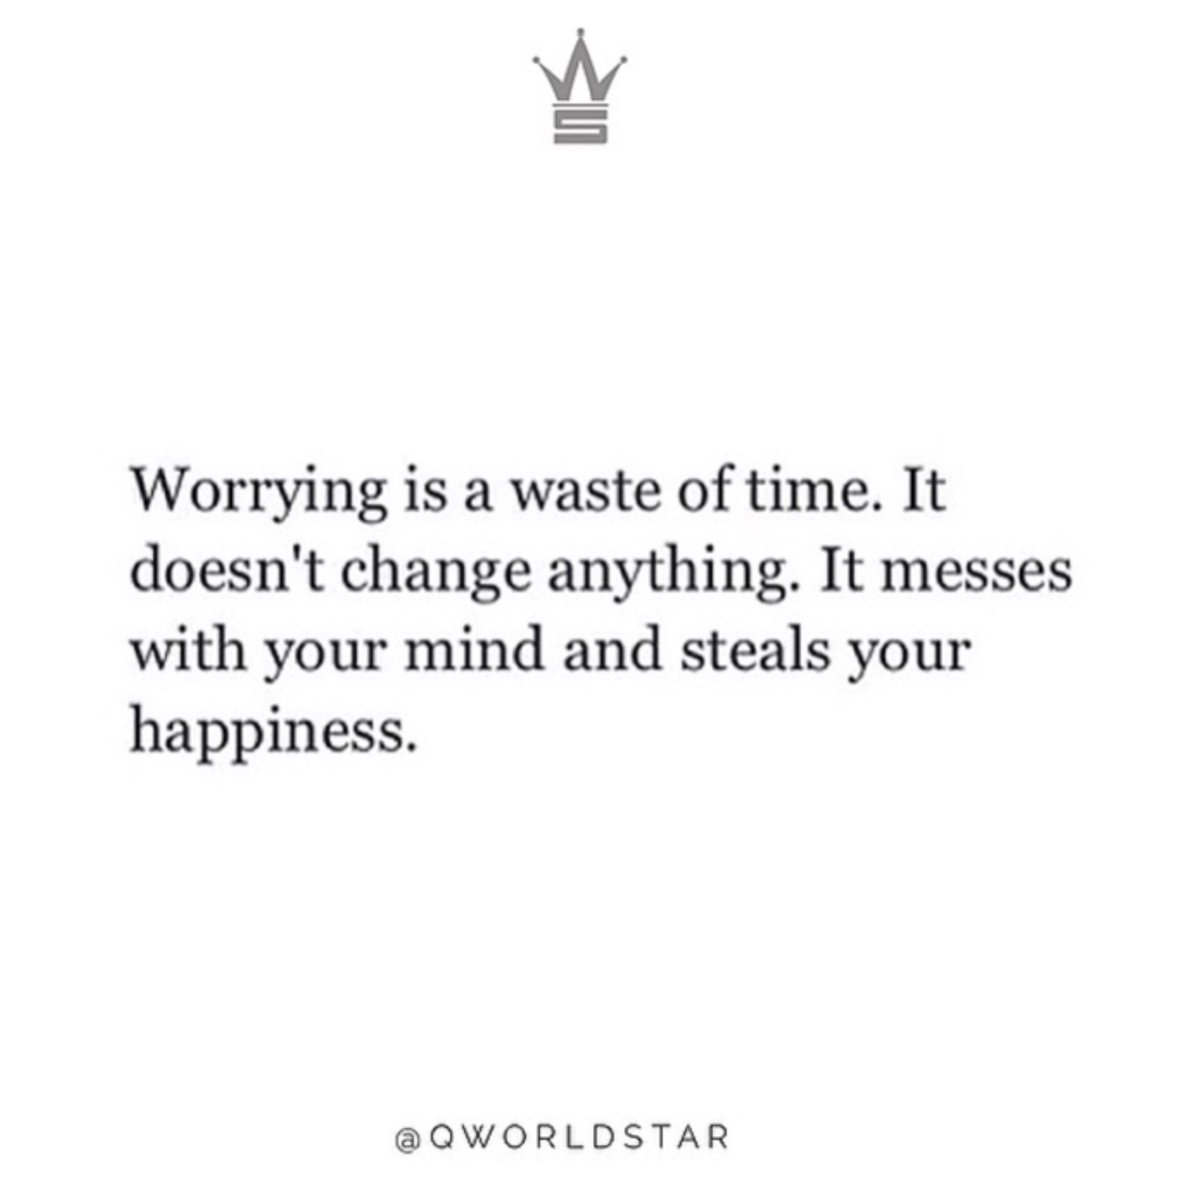 "RT @WORLDSTAR: ""Why worry when you can't do anything about it..."" 🙏 @QWorldstar https://t.co/Padwotxpwg"